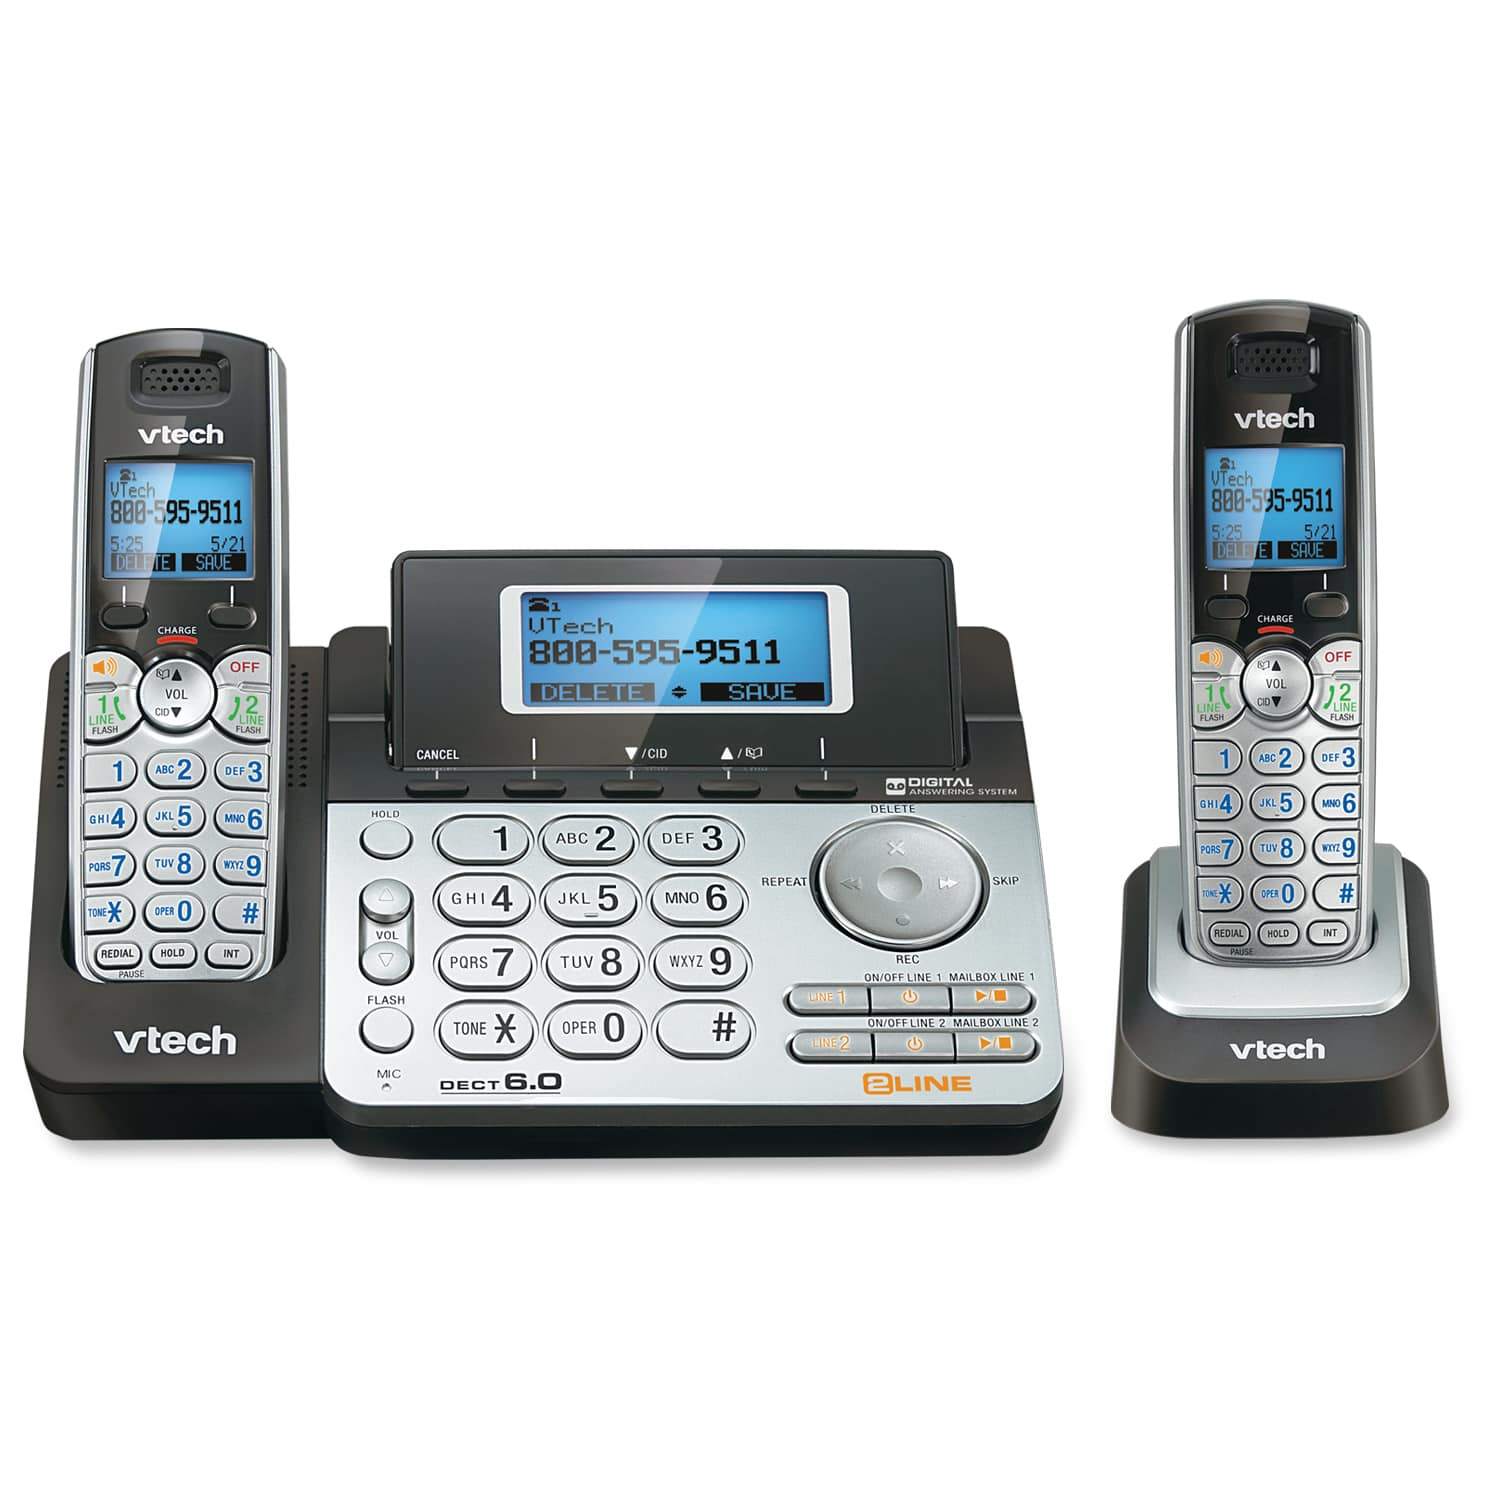 2 line 2 handset answering system with dual caller id call waiting ds6151 one ds6101 vtech. Black Bedroom Furniture Sets. Home Design Ideas